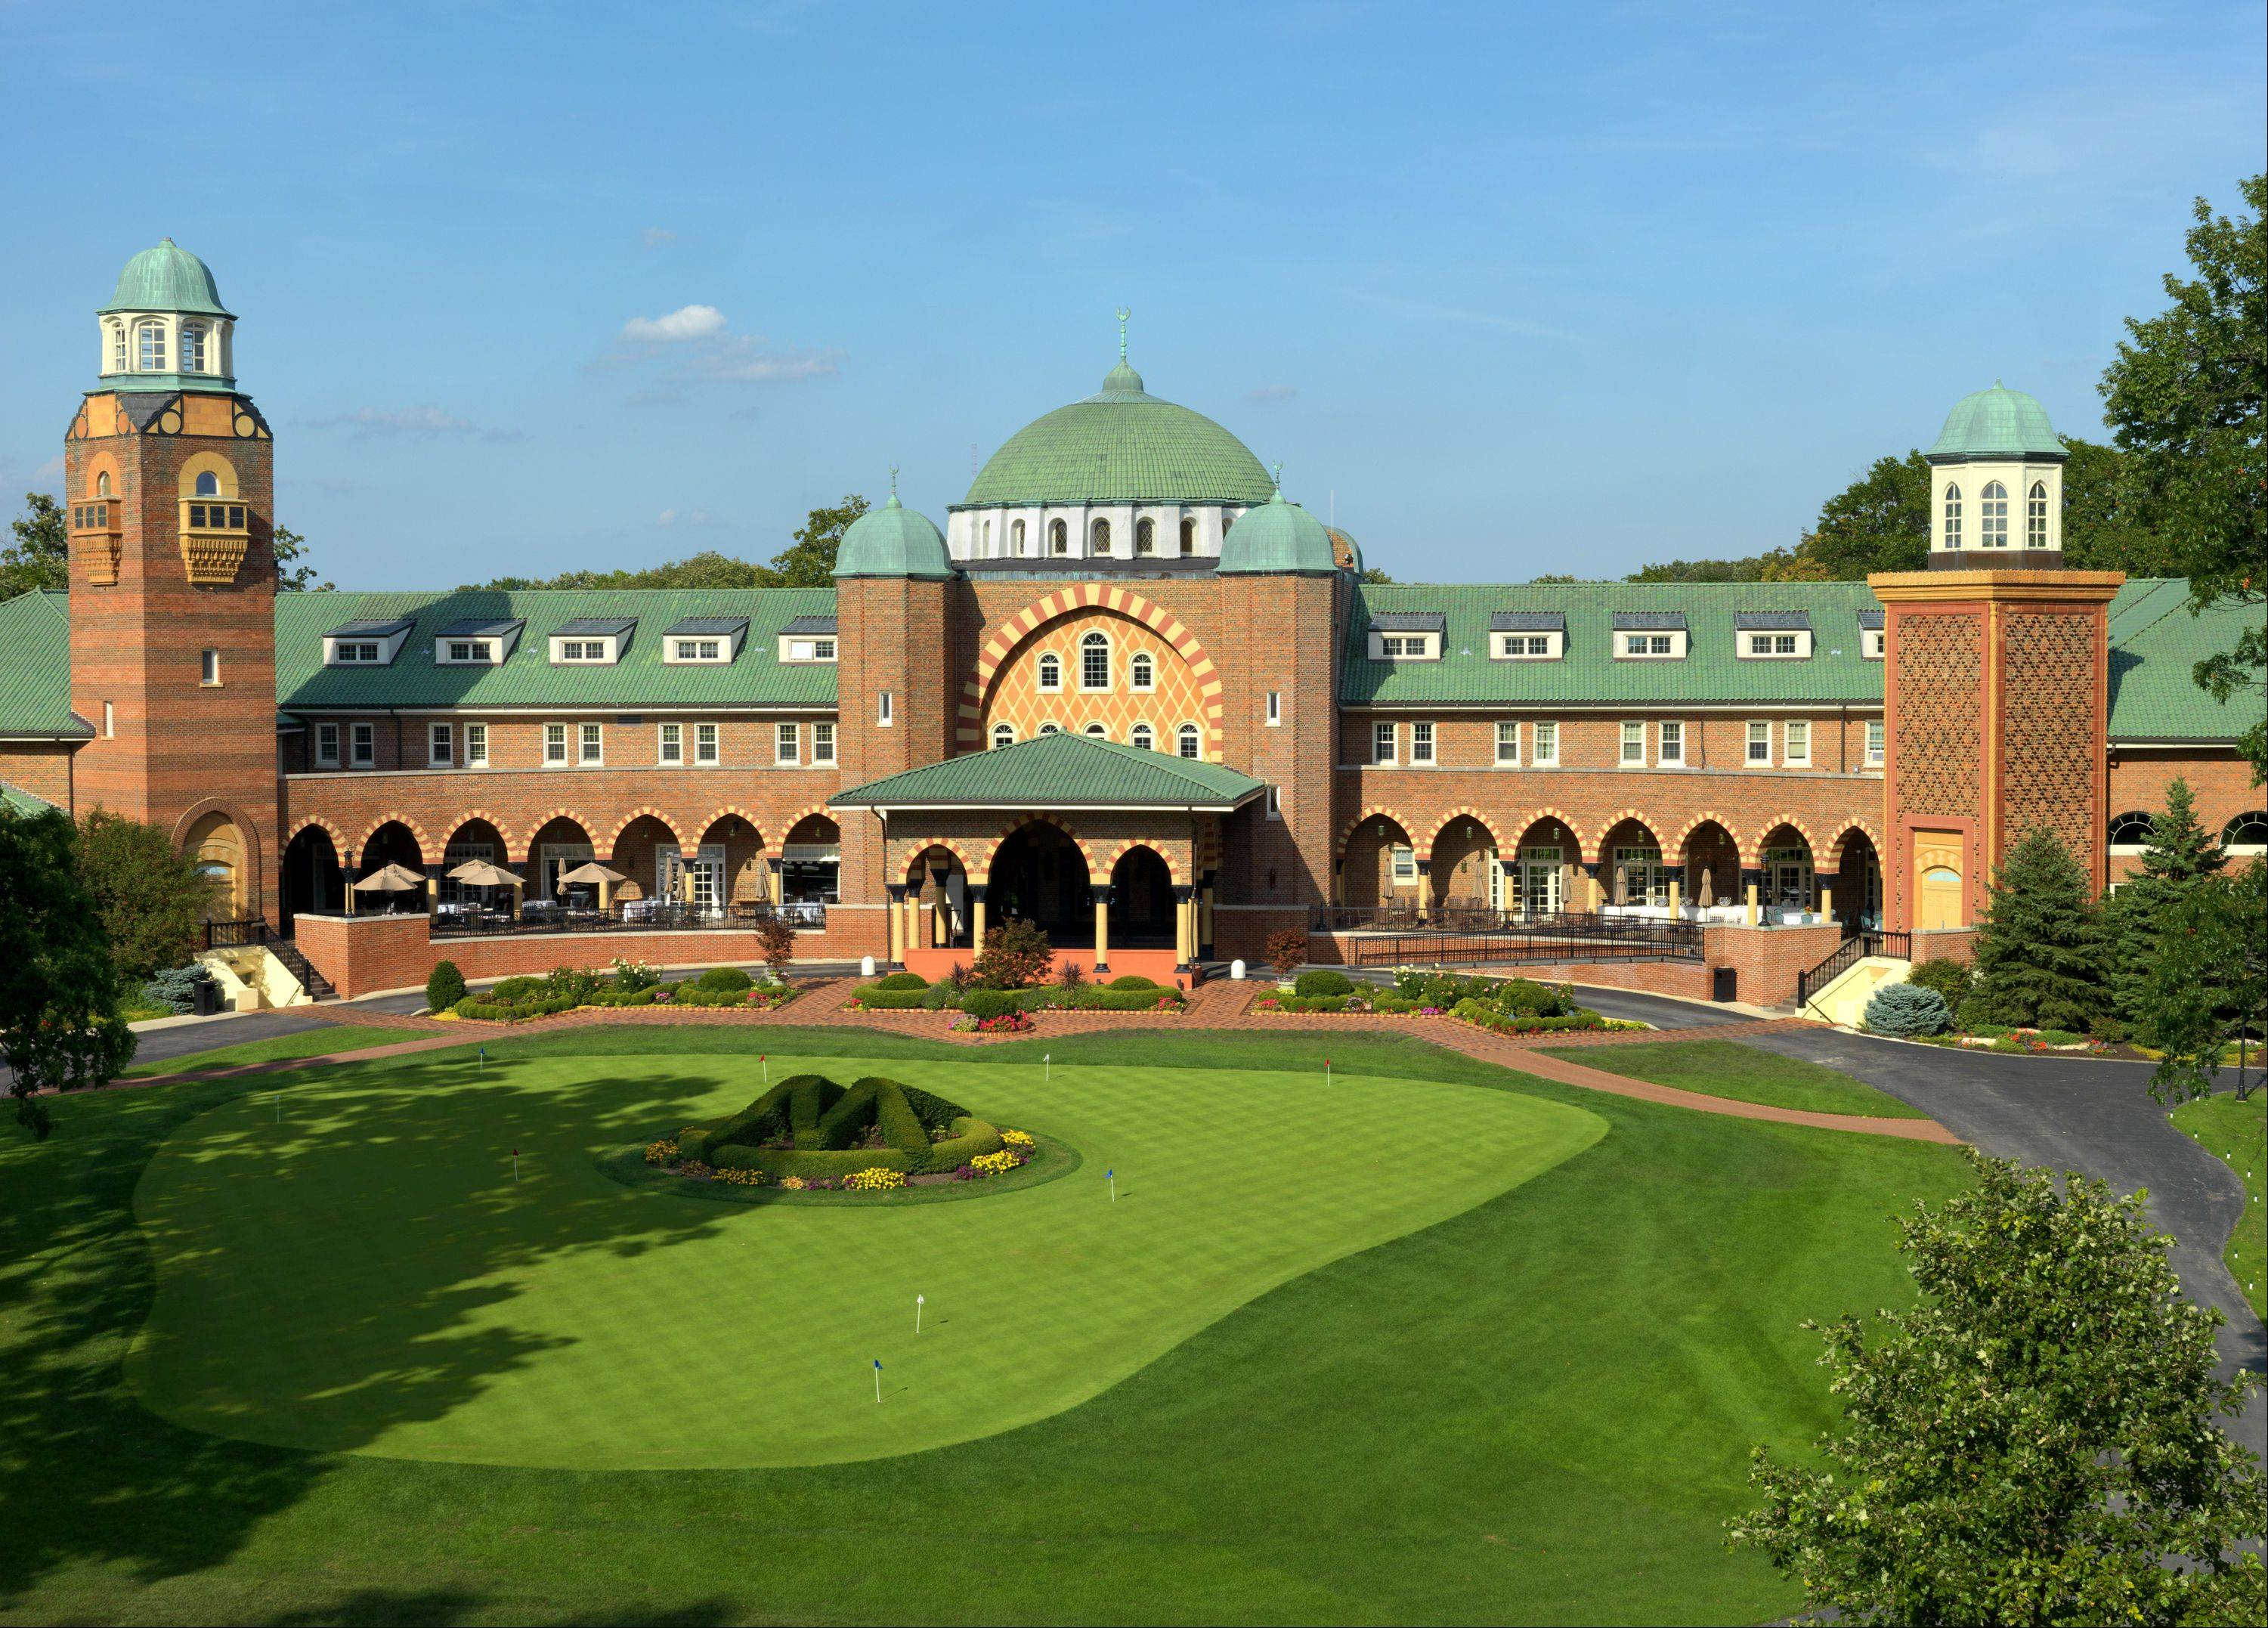 Medinah Country Club has completed a major re-design of its No. 1 course, but it won't be ready for play by members until next spring or summer.